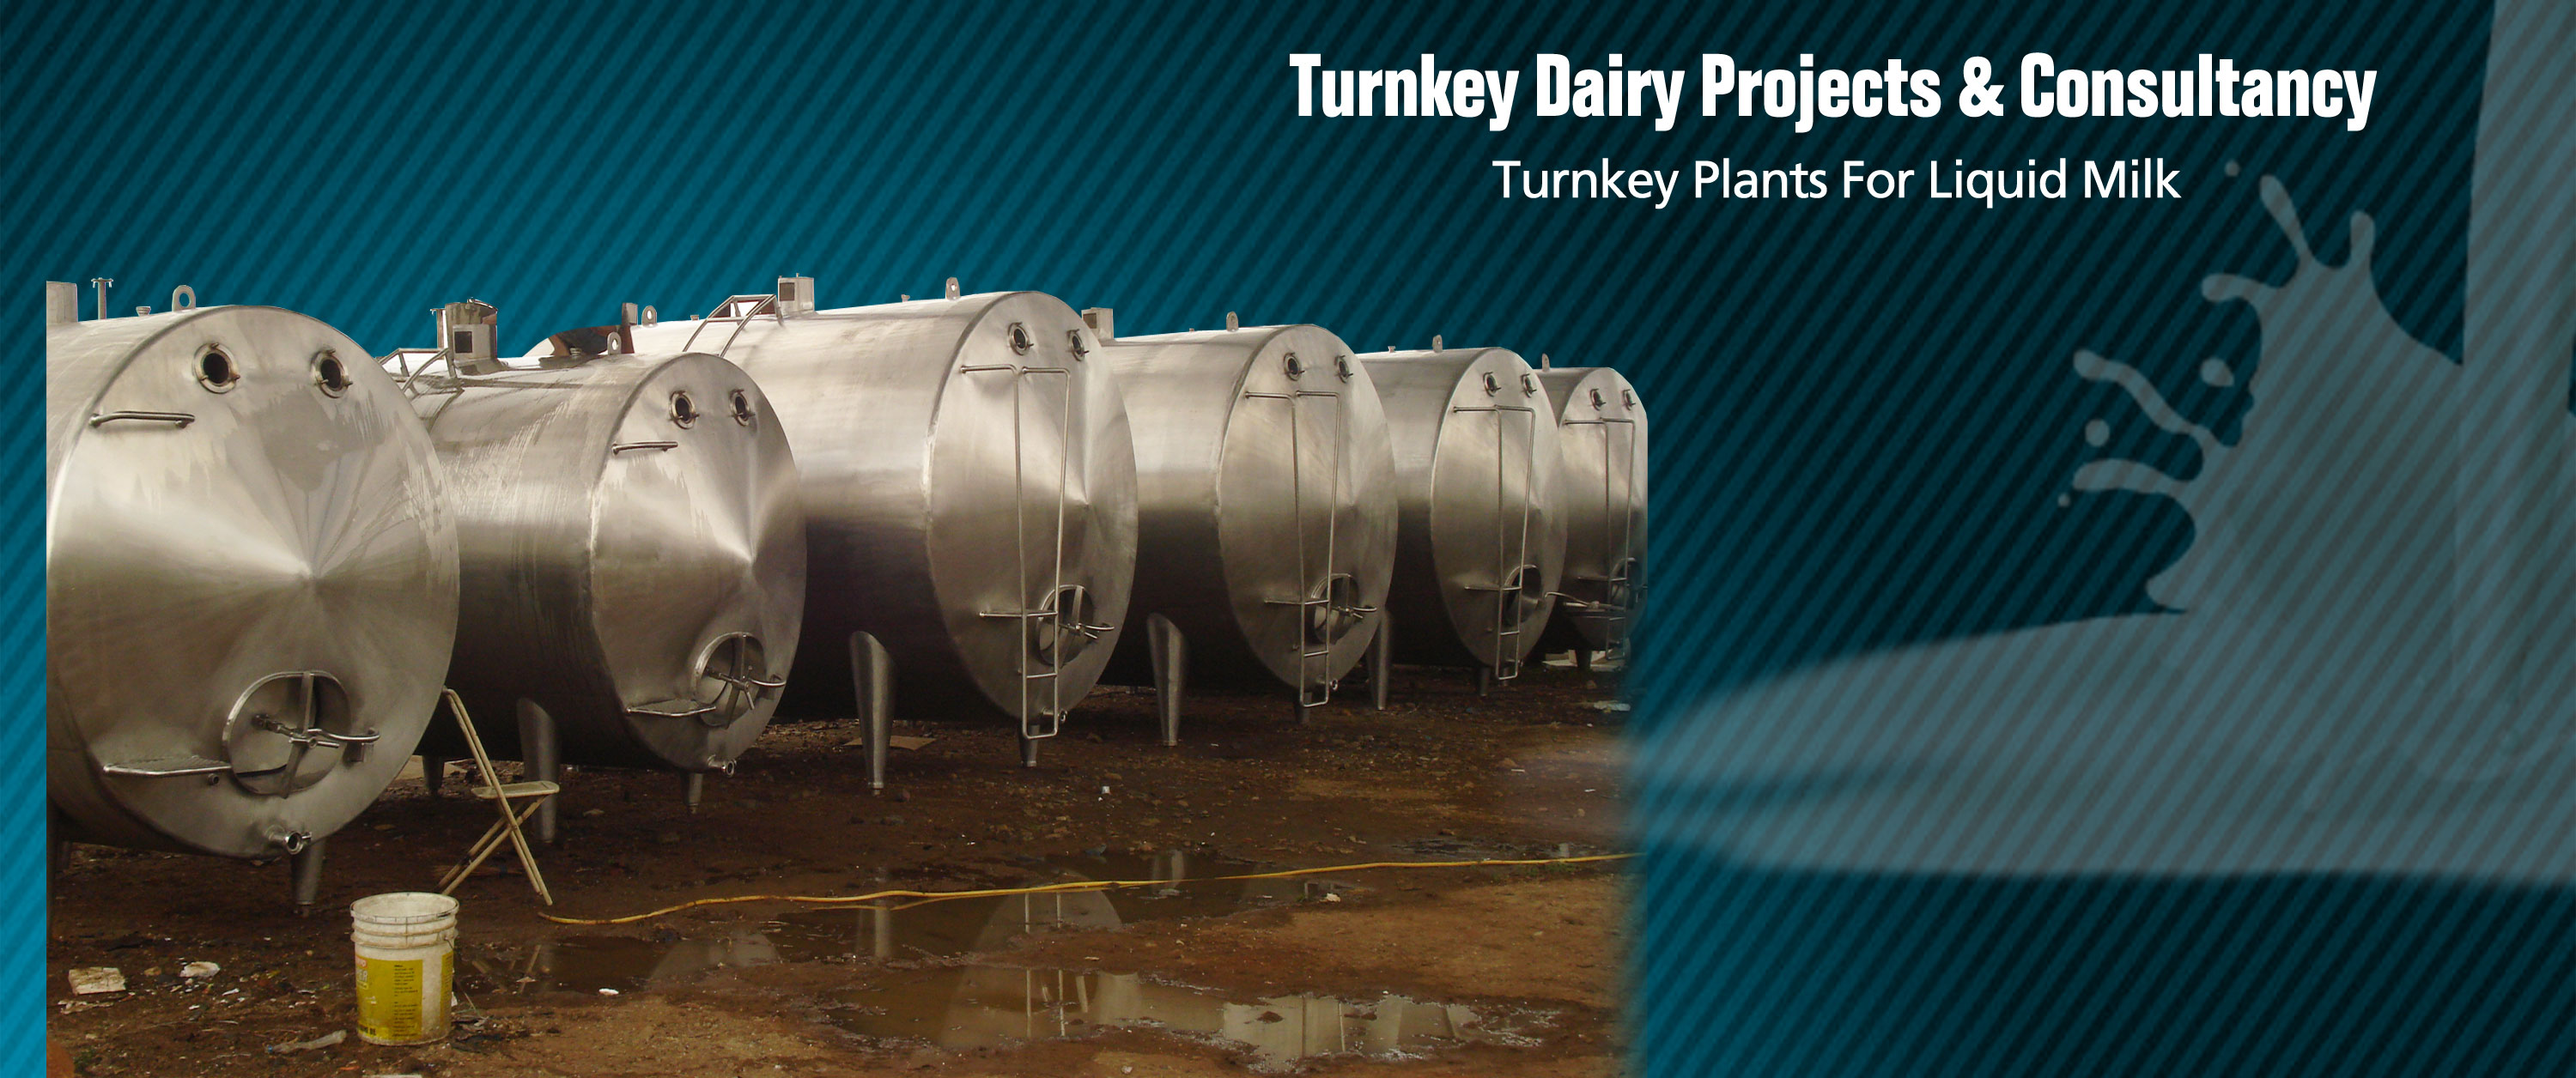 turnkey dairy projects and consultancy